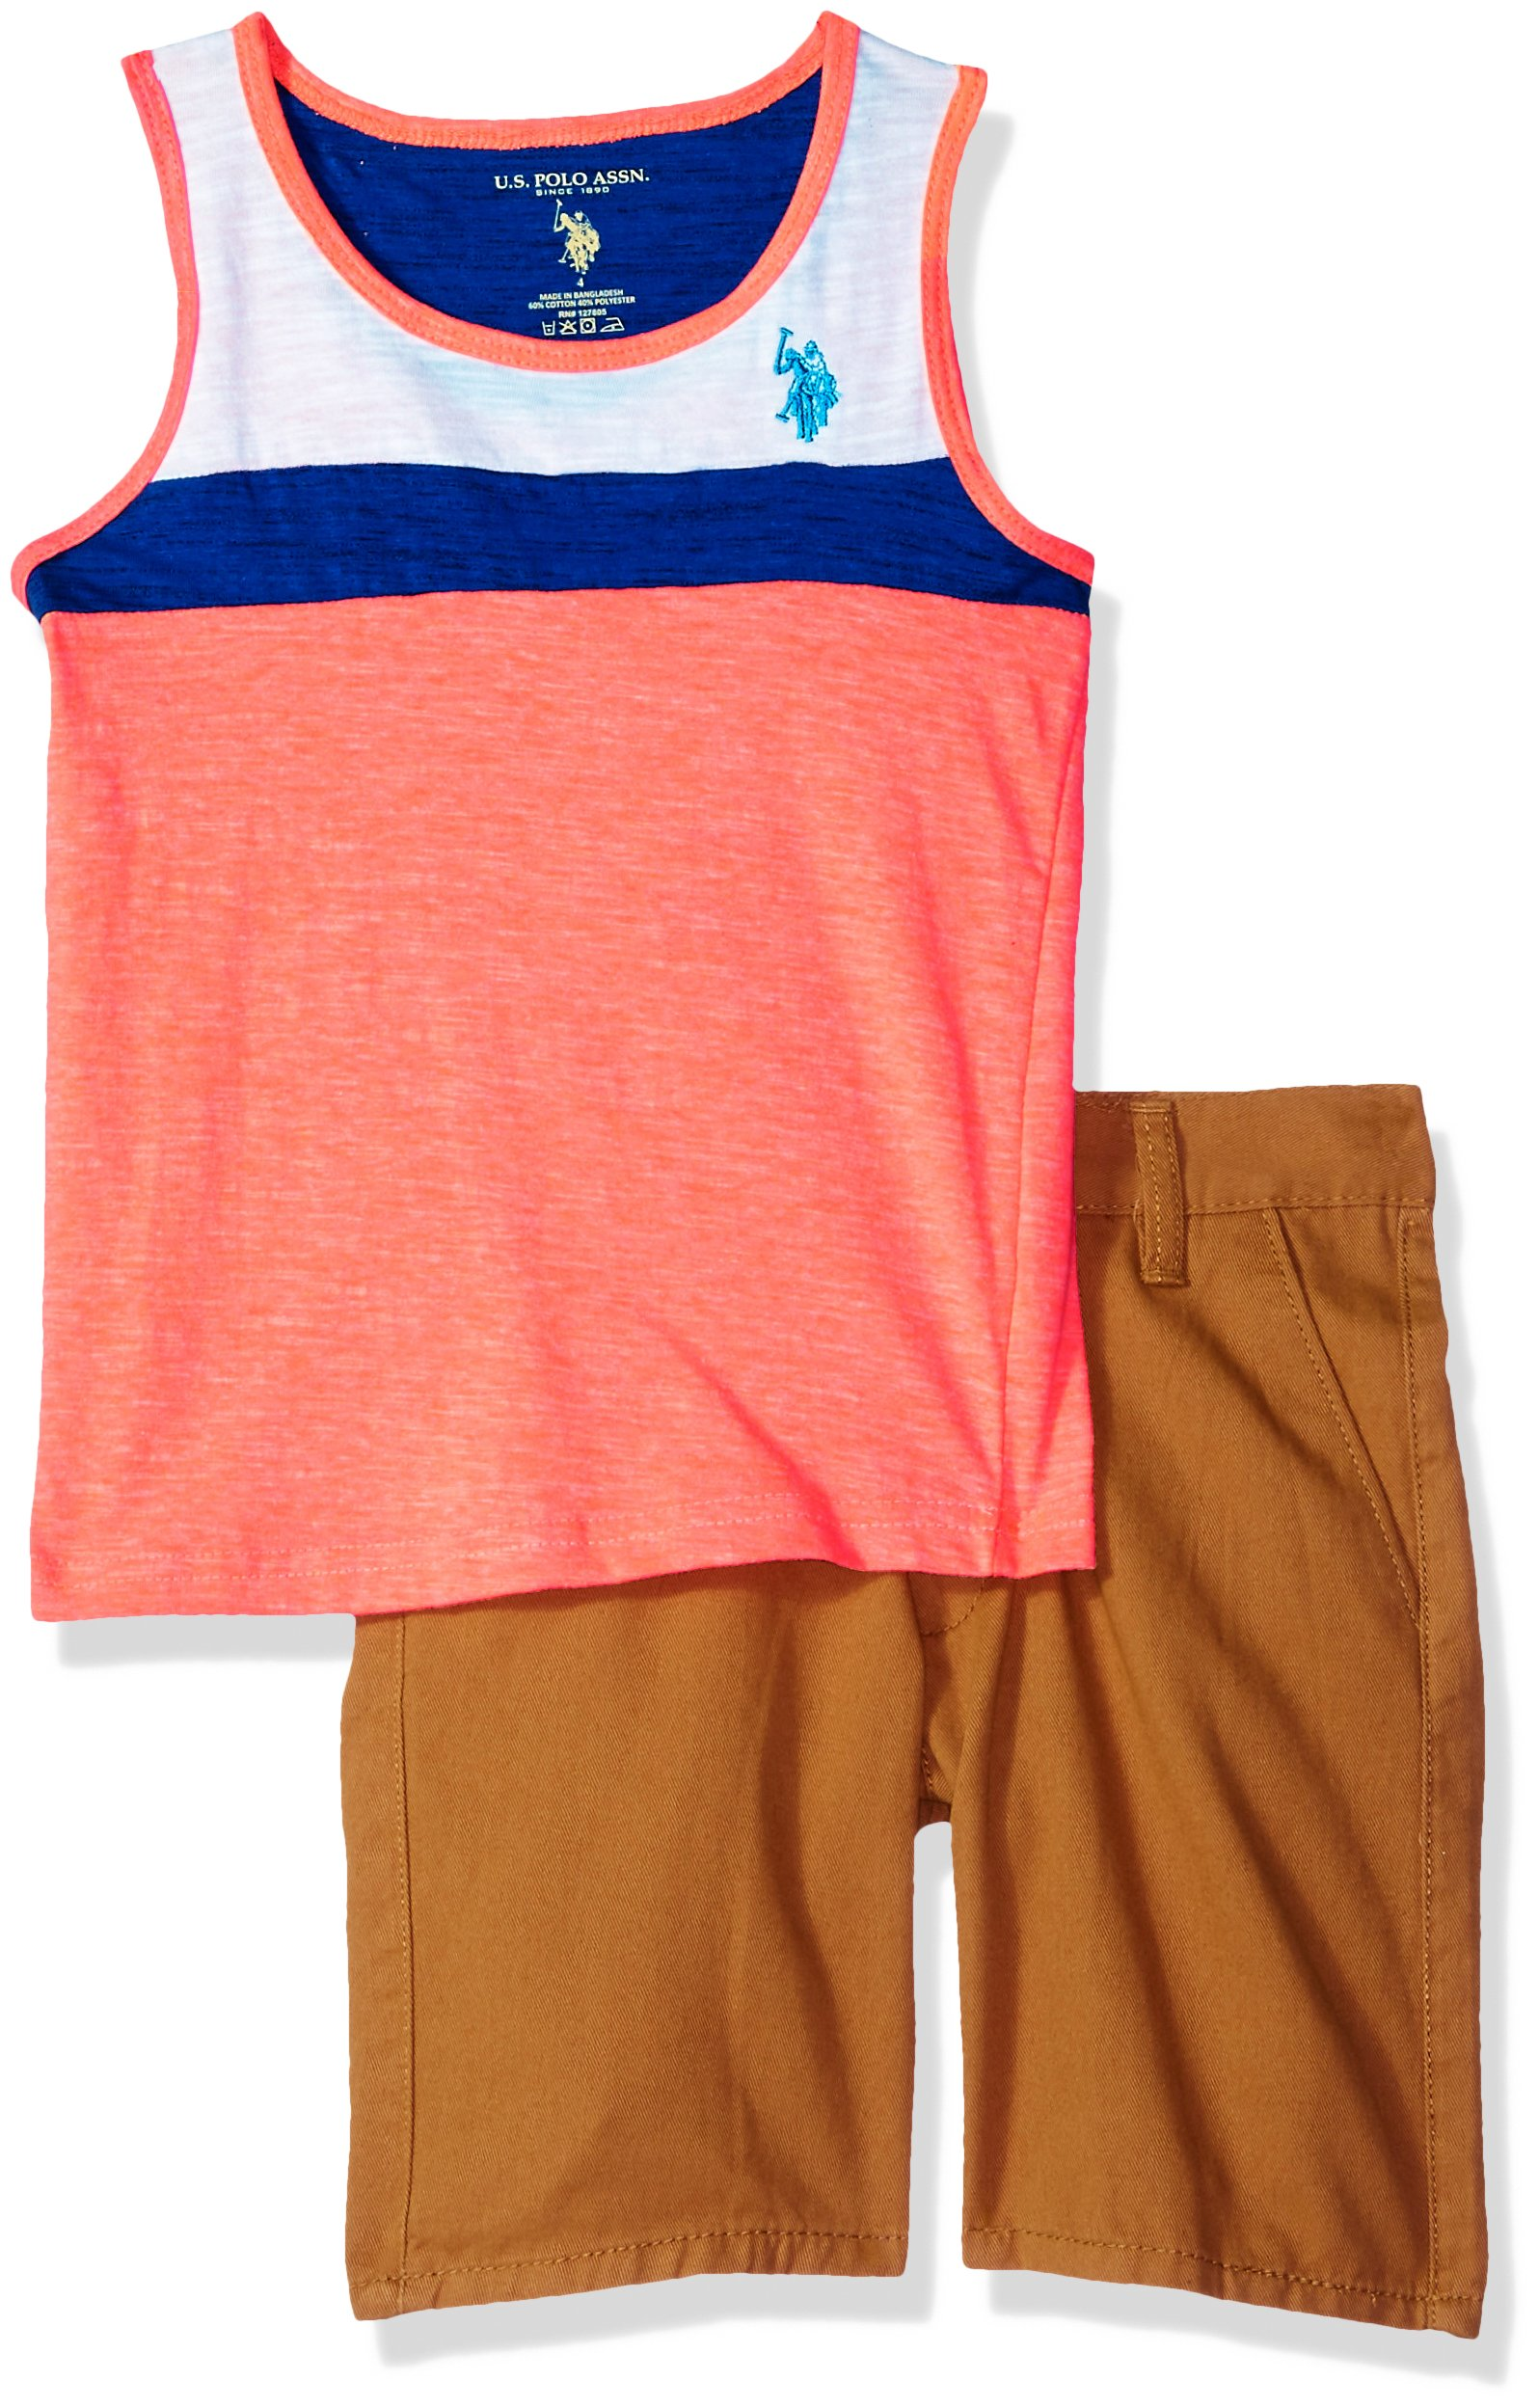 U.S. Polo Assn. Boys' Tank and Short Set